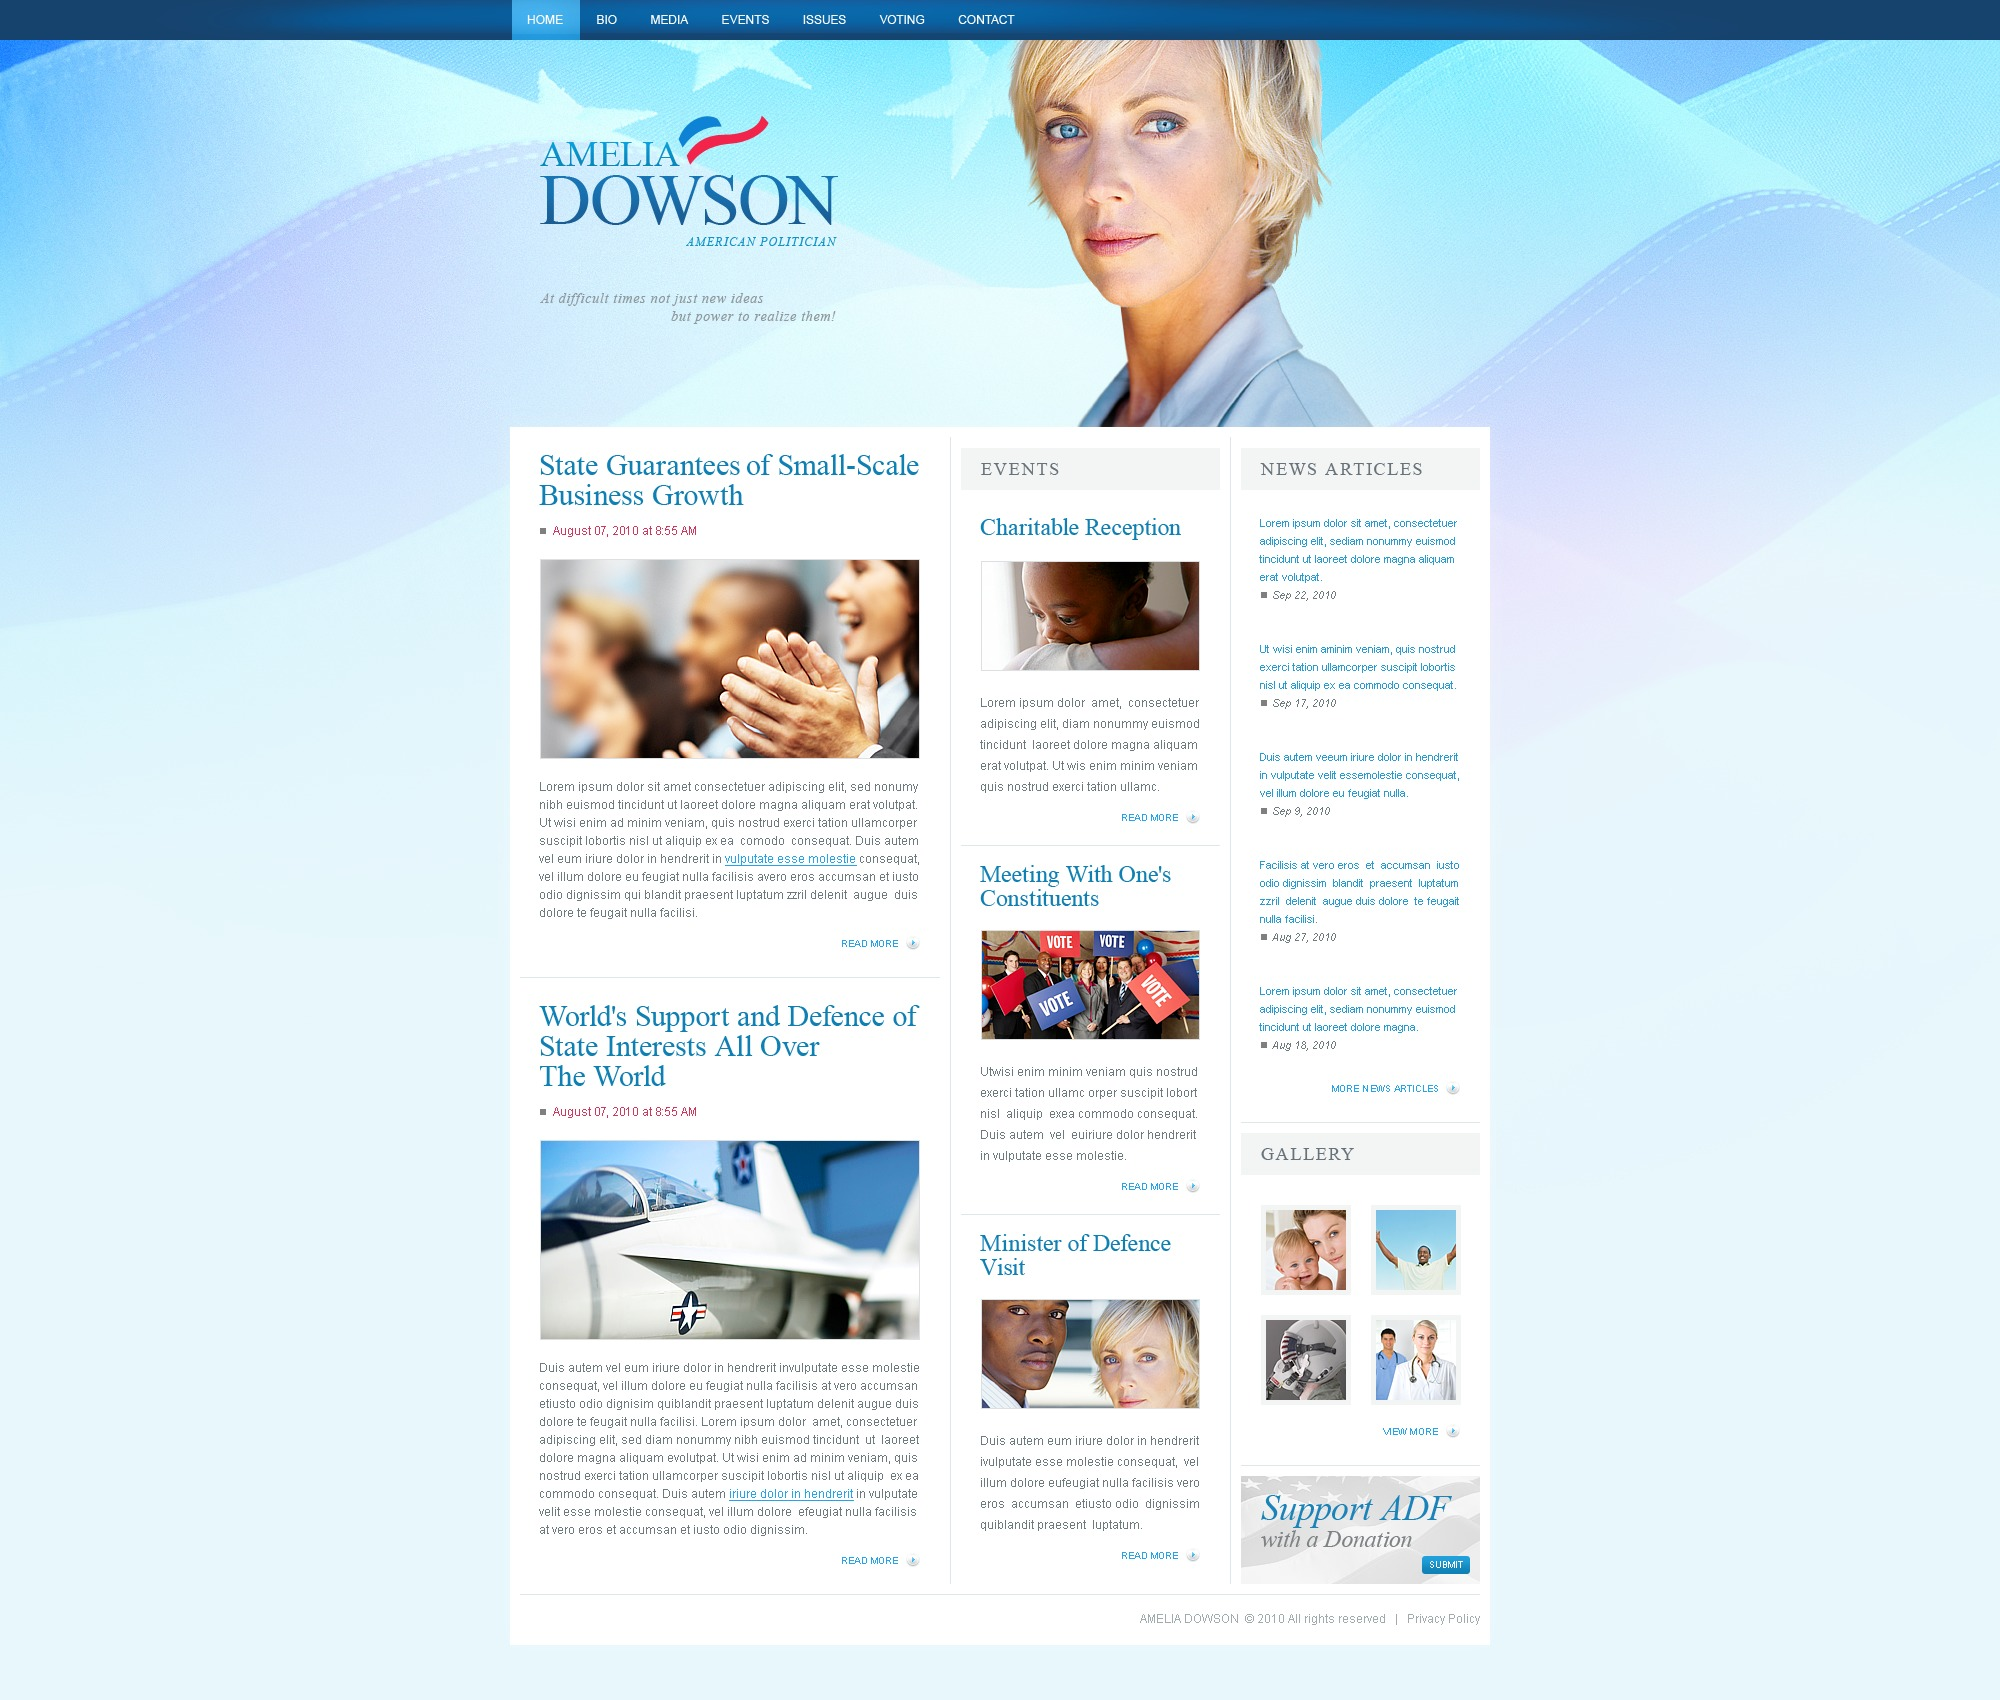 The Amelia Dowson Politician PSD Design 54471, one of the best PSD templates of its kind (politics, most popular, flash 8, wide), also known as Amelia Dowson politician PSD template, political organization PSD template, leader PSD template, chairman PSD template, campaign PSD template, constitution PSD template, member PSD template, principles PSD template, information PSD template, donation PSD template, platform PSD template, flag PSD template, candidates PSD template, debates PSD template, structure PSD template, election PSD template, program PSD template, priority and related with Amelia Dowson politician, political organization, leader, chairman, campaign, constitution, member, principles, information, donation, platform, flag, candidates, debates, structure, election, program, priority, etc.